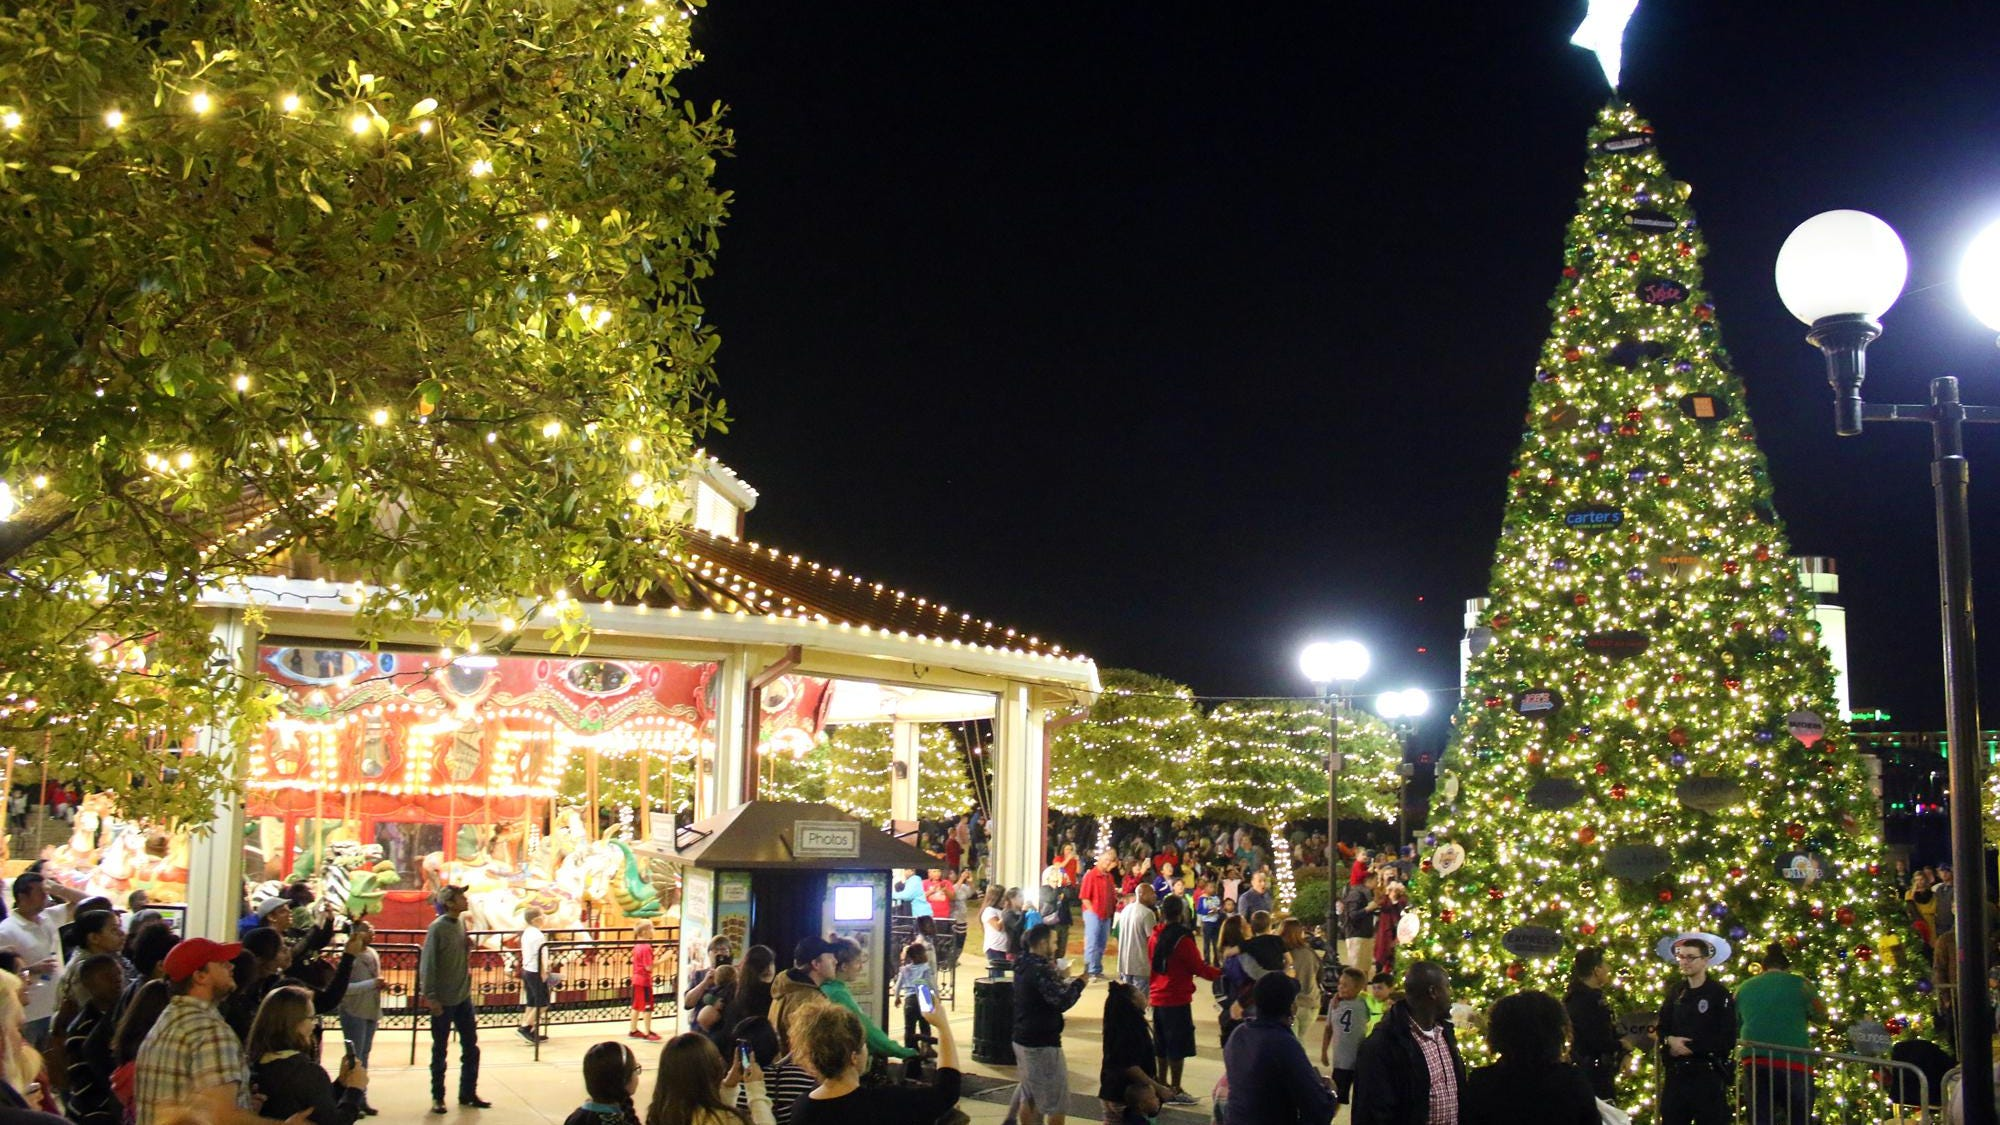 Shreveport Bossier Holiday Concerts Fireworks Holiday Events